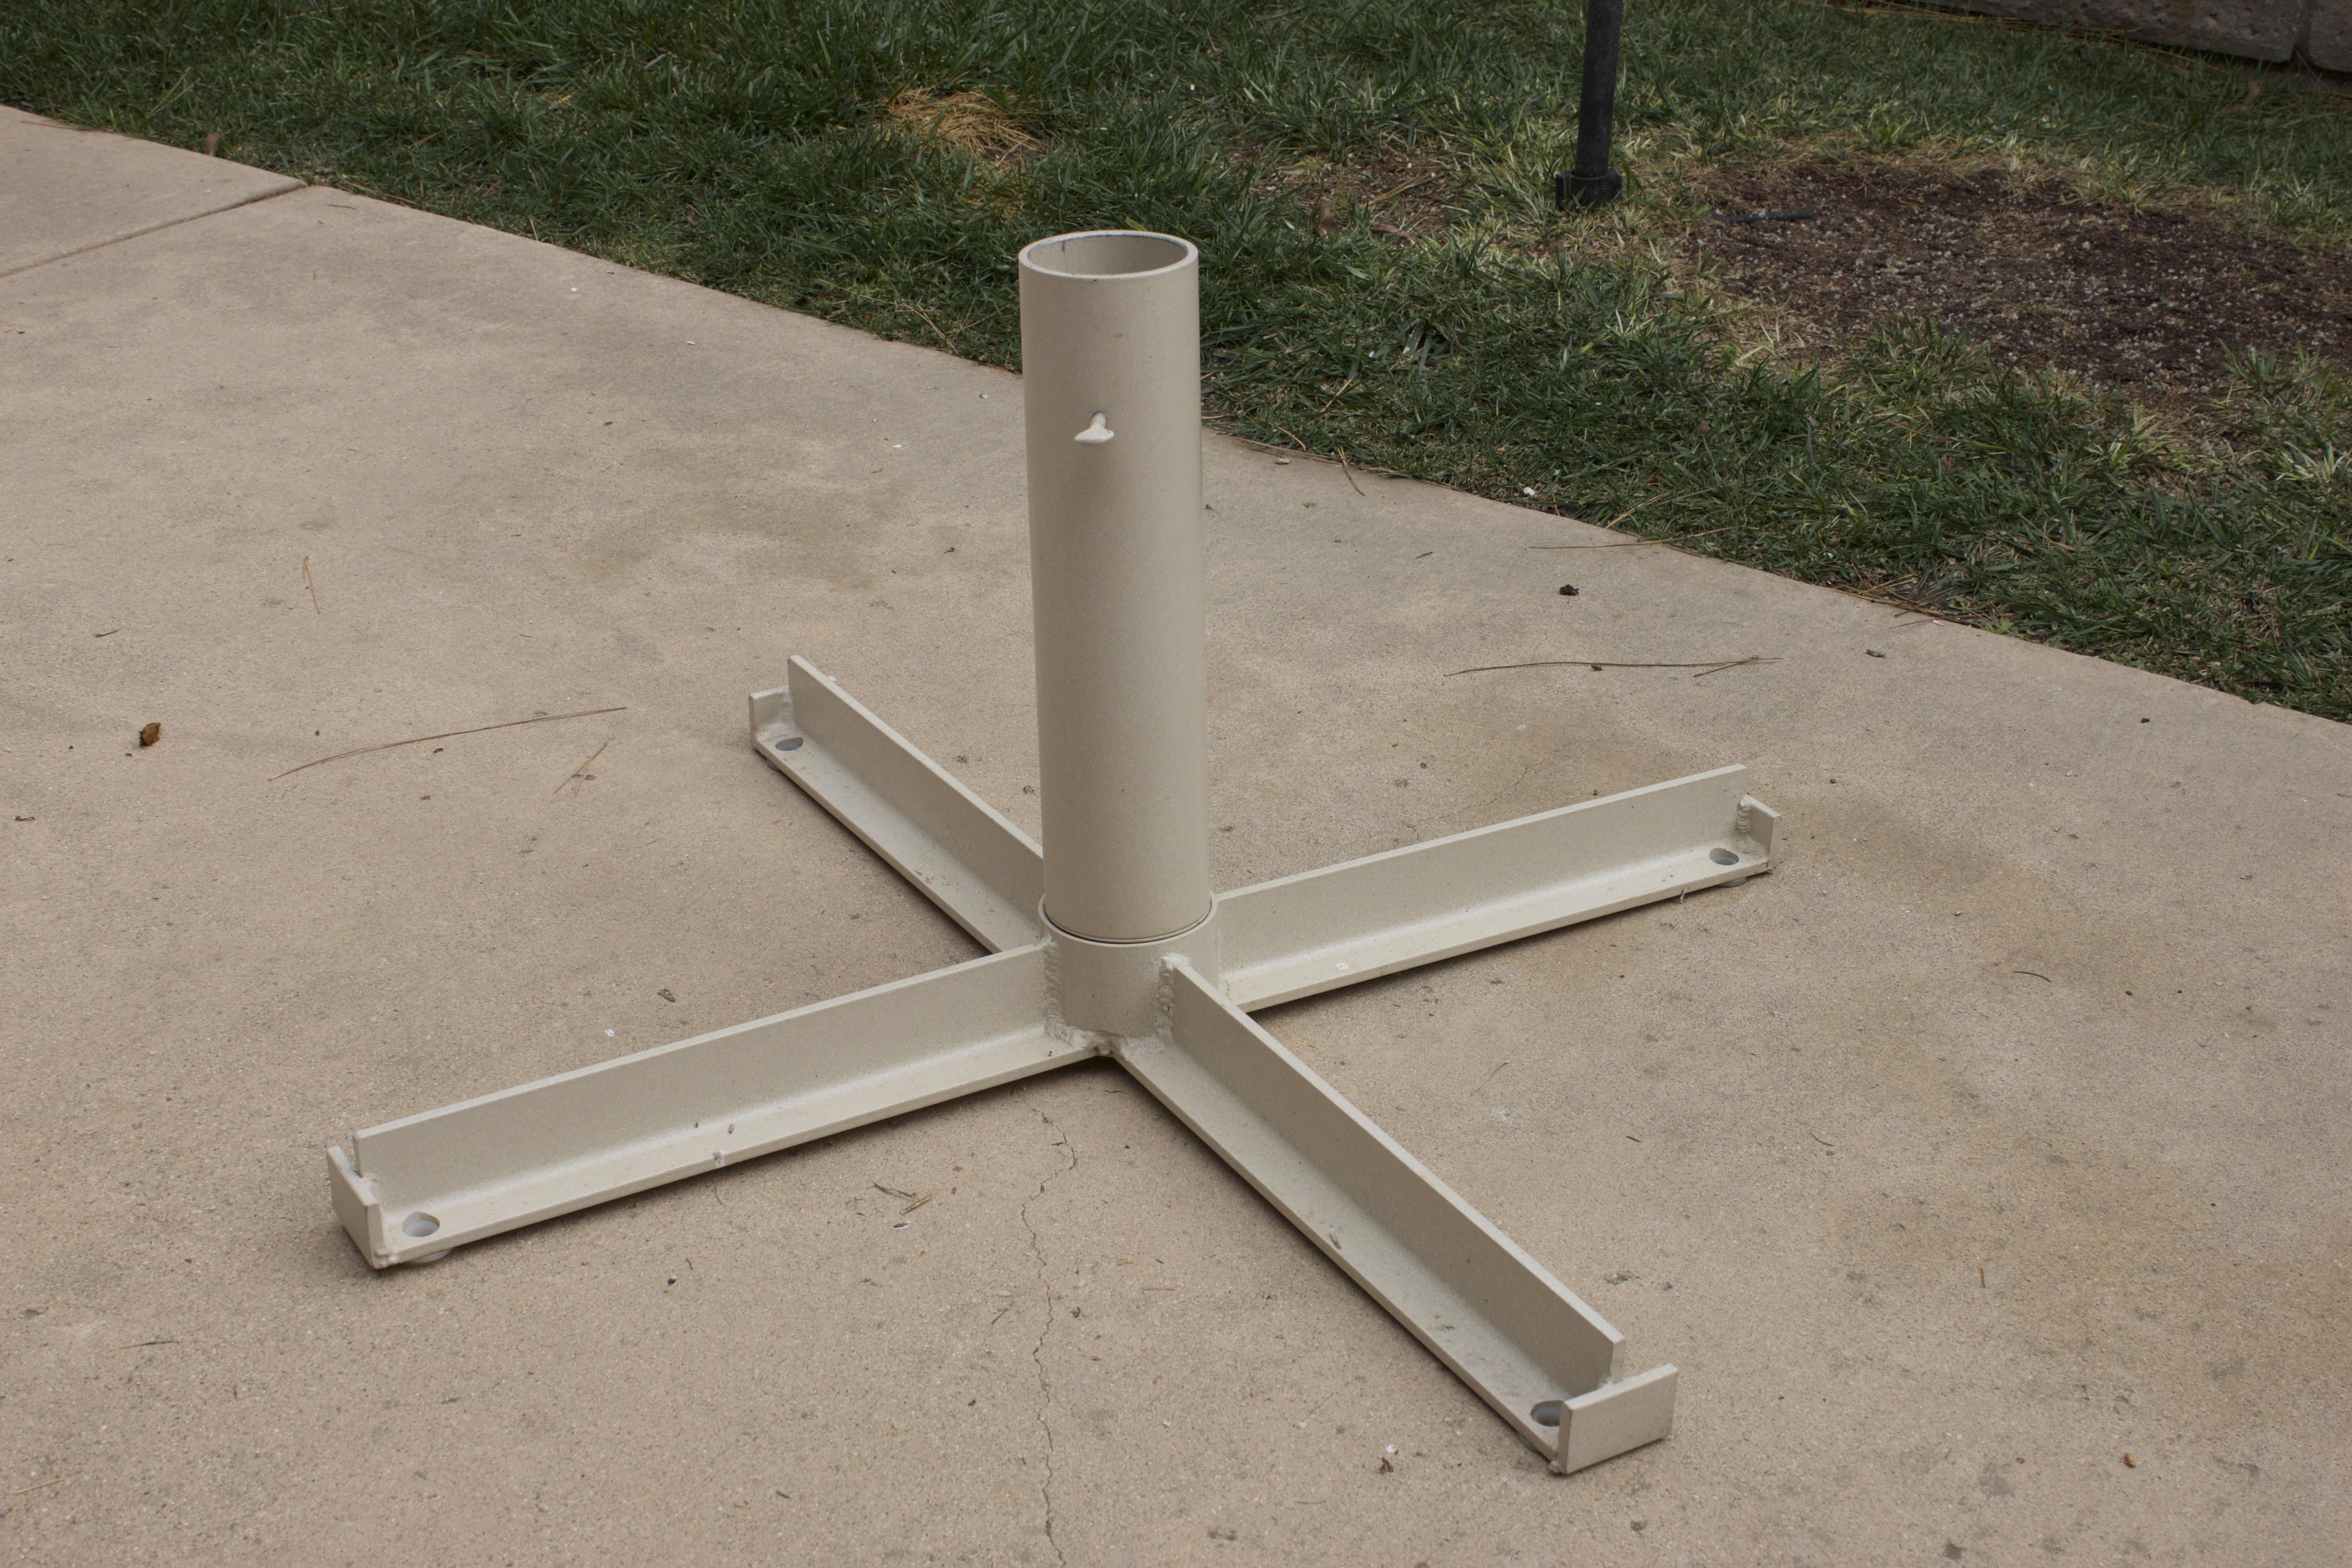 Patio Umbrellas And Bases Inside Well Known Do Patio Umbrella Bases Go To Heaven? – Patio Umbrella Repair (View 7 of 20)